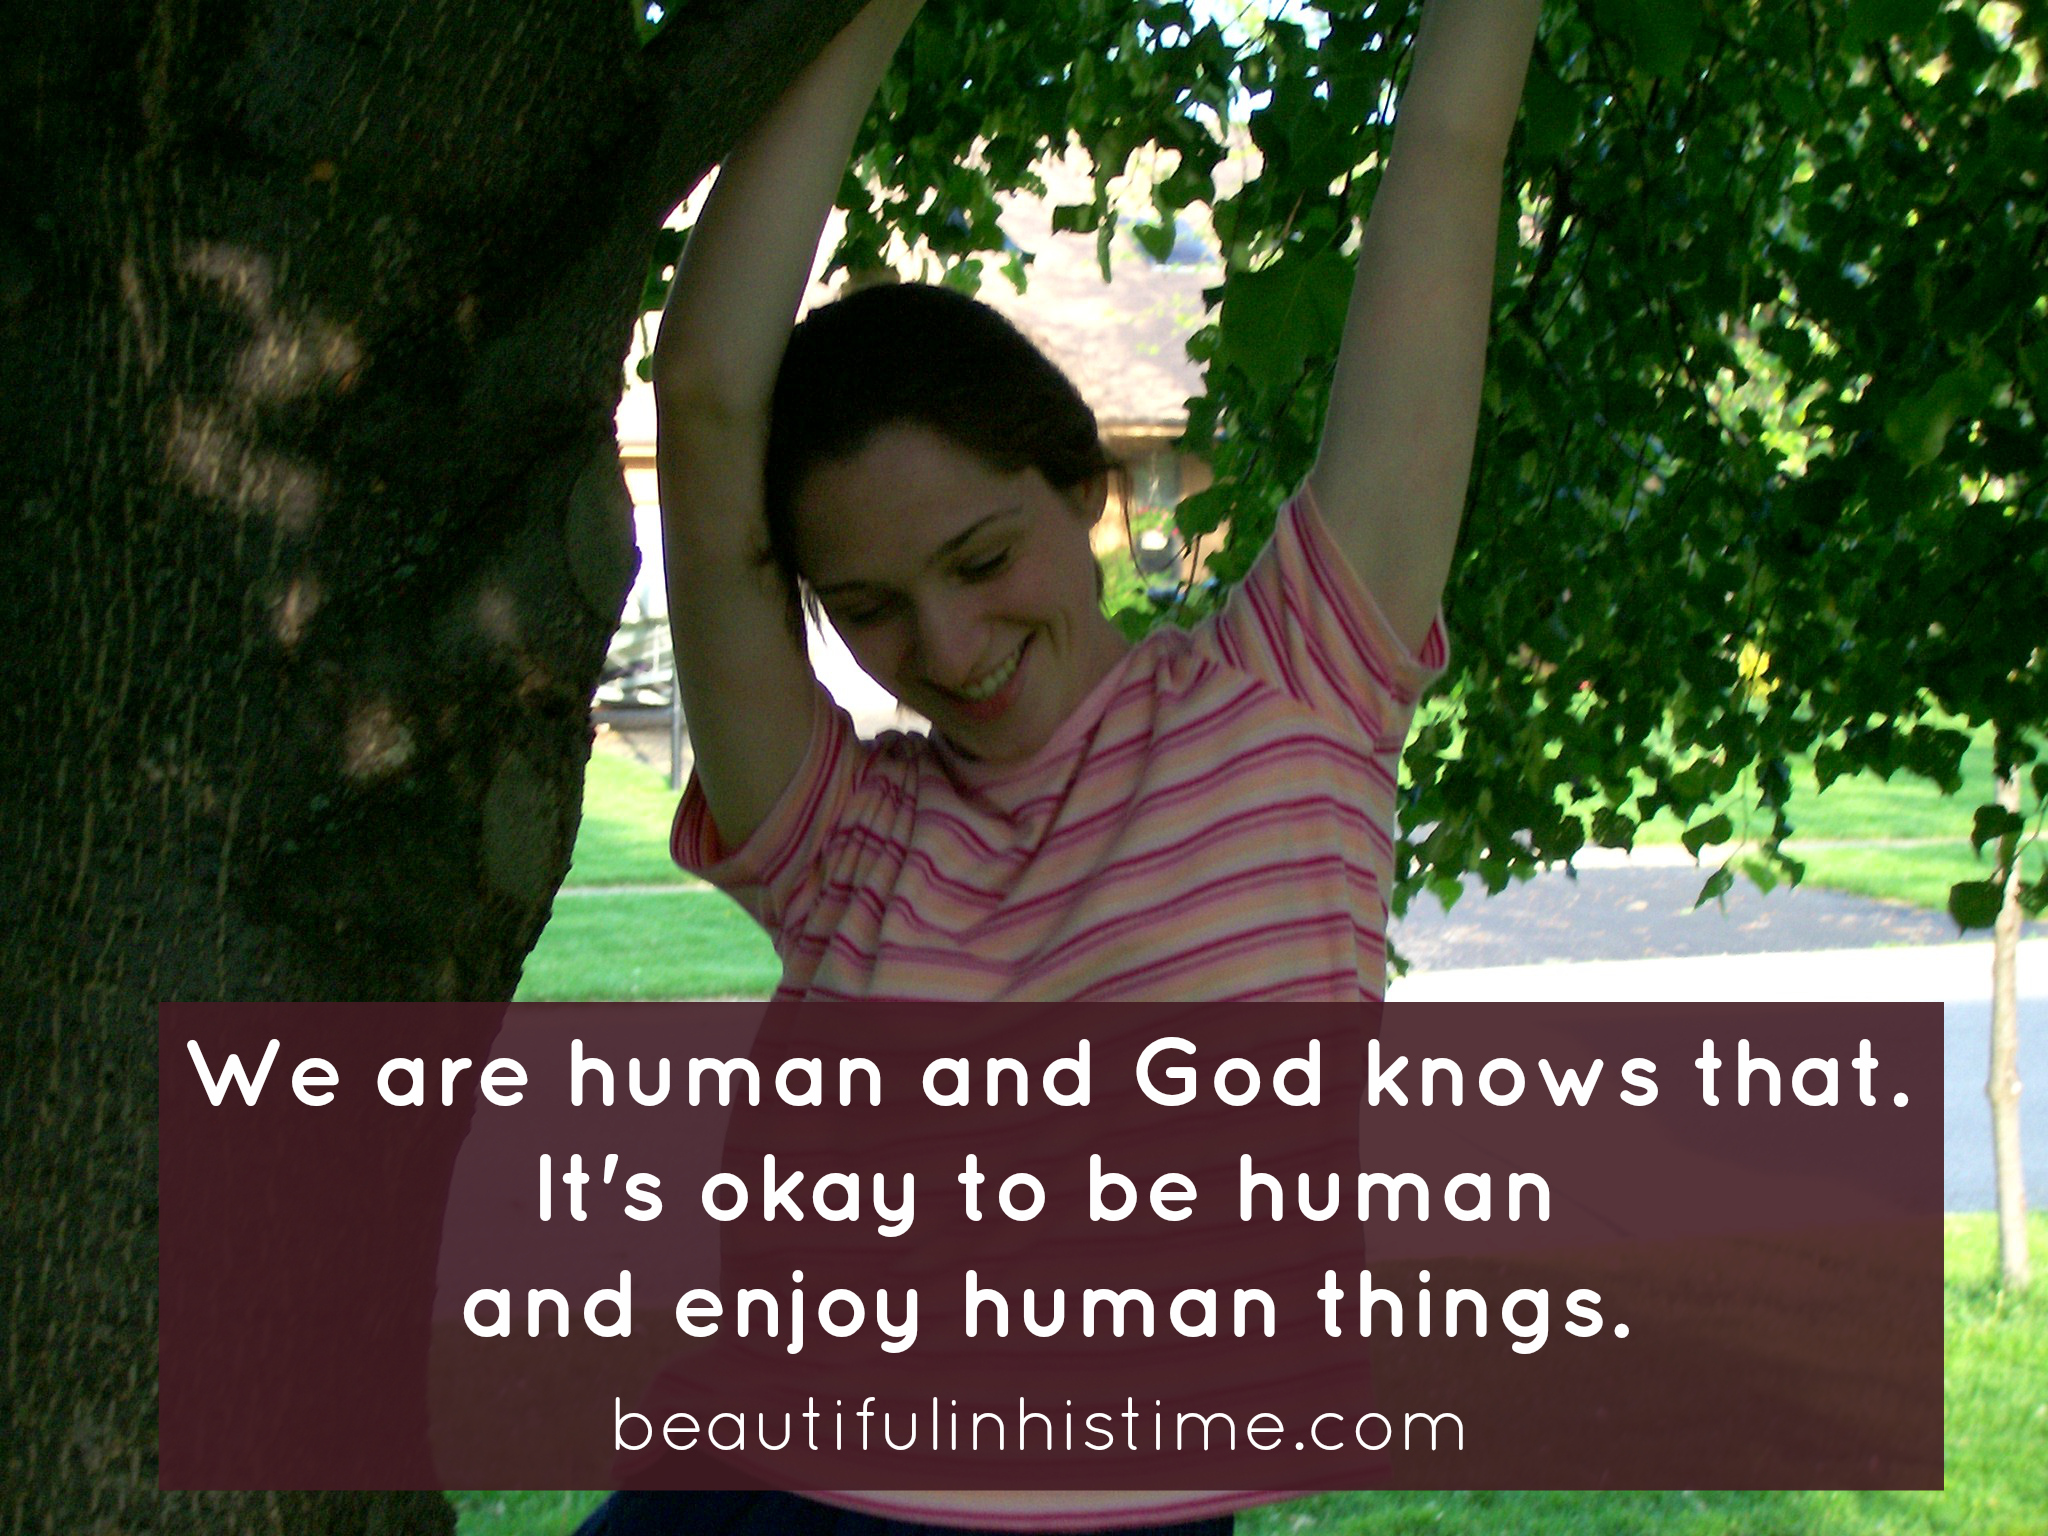 finding #healing and #freedom in secular #music: it's okay to be #human {the wilderness between #legalism and #grace  - part 8 @beautifulinhistime.com}